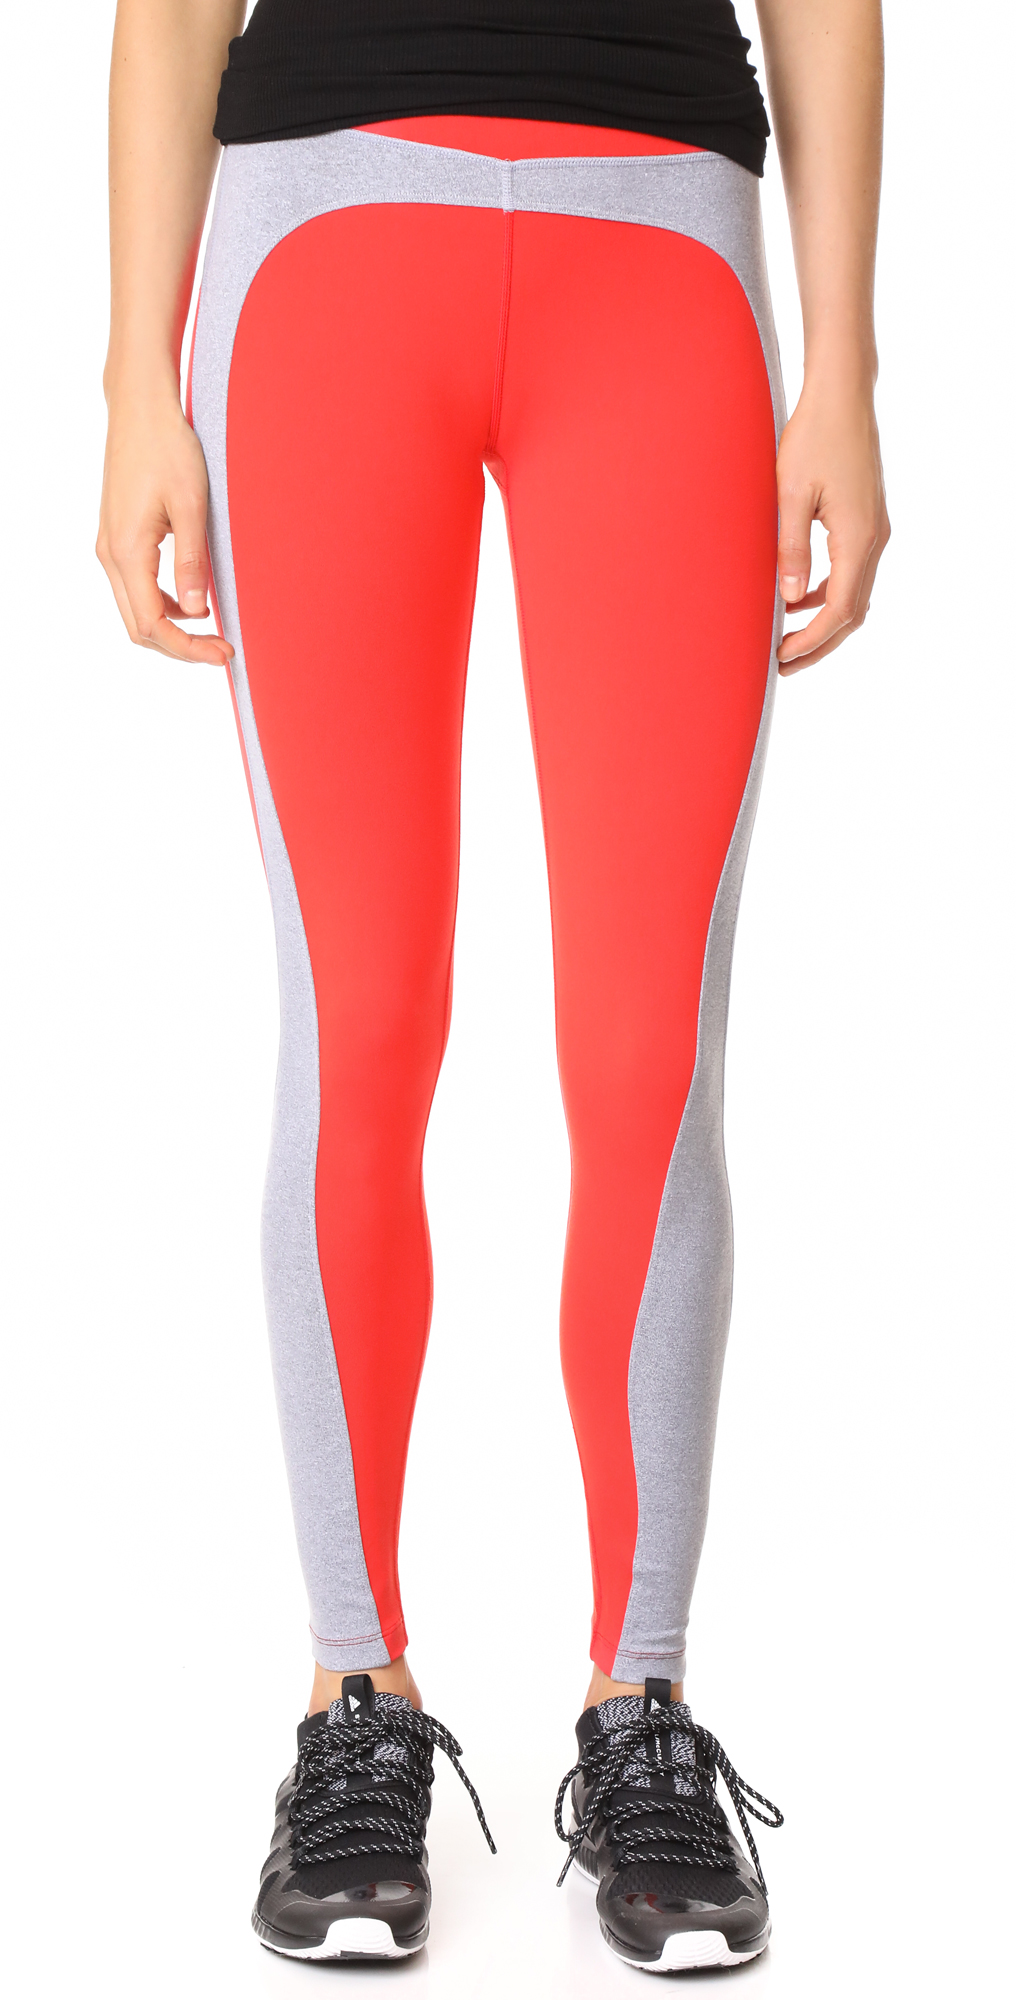 Sinker Leggings Splits59